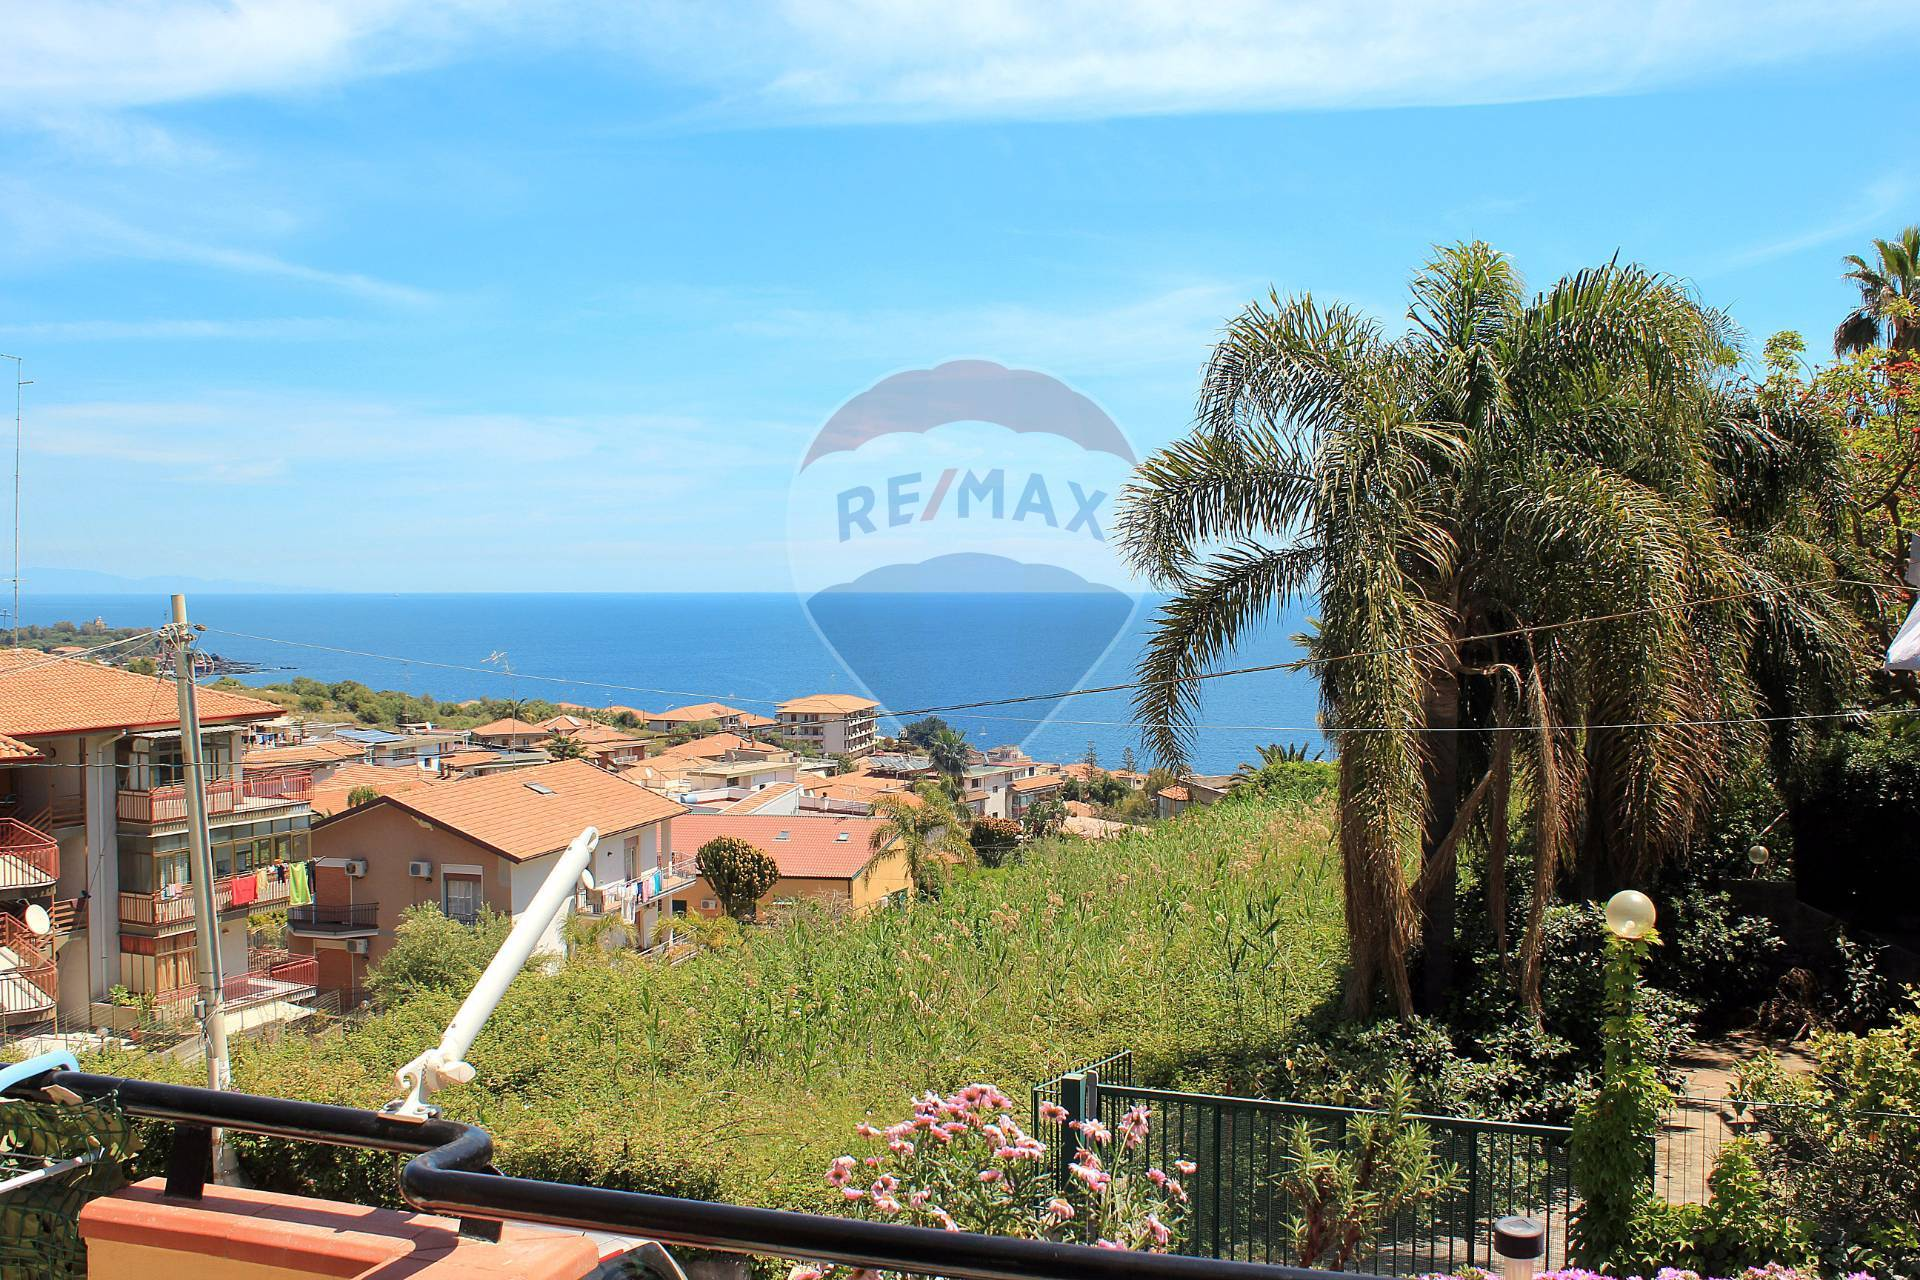 aci castello vendita quart:  re/max casa trend